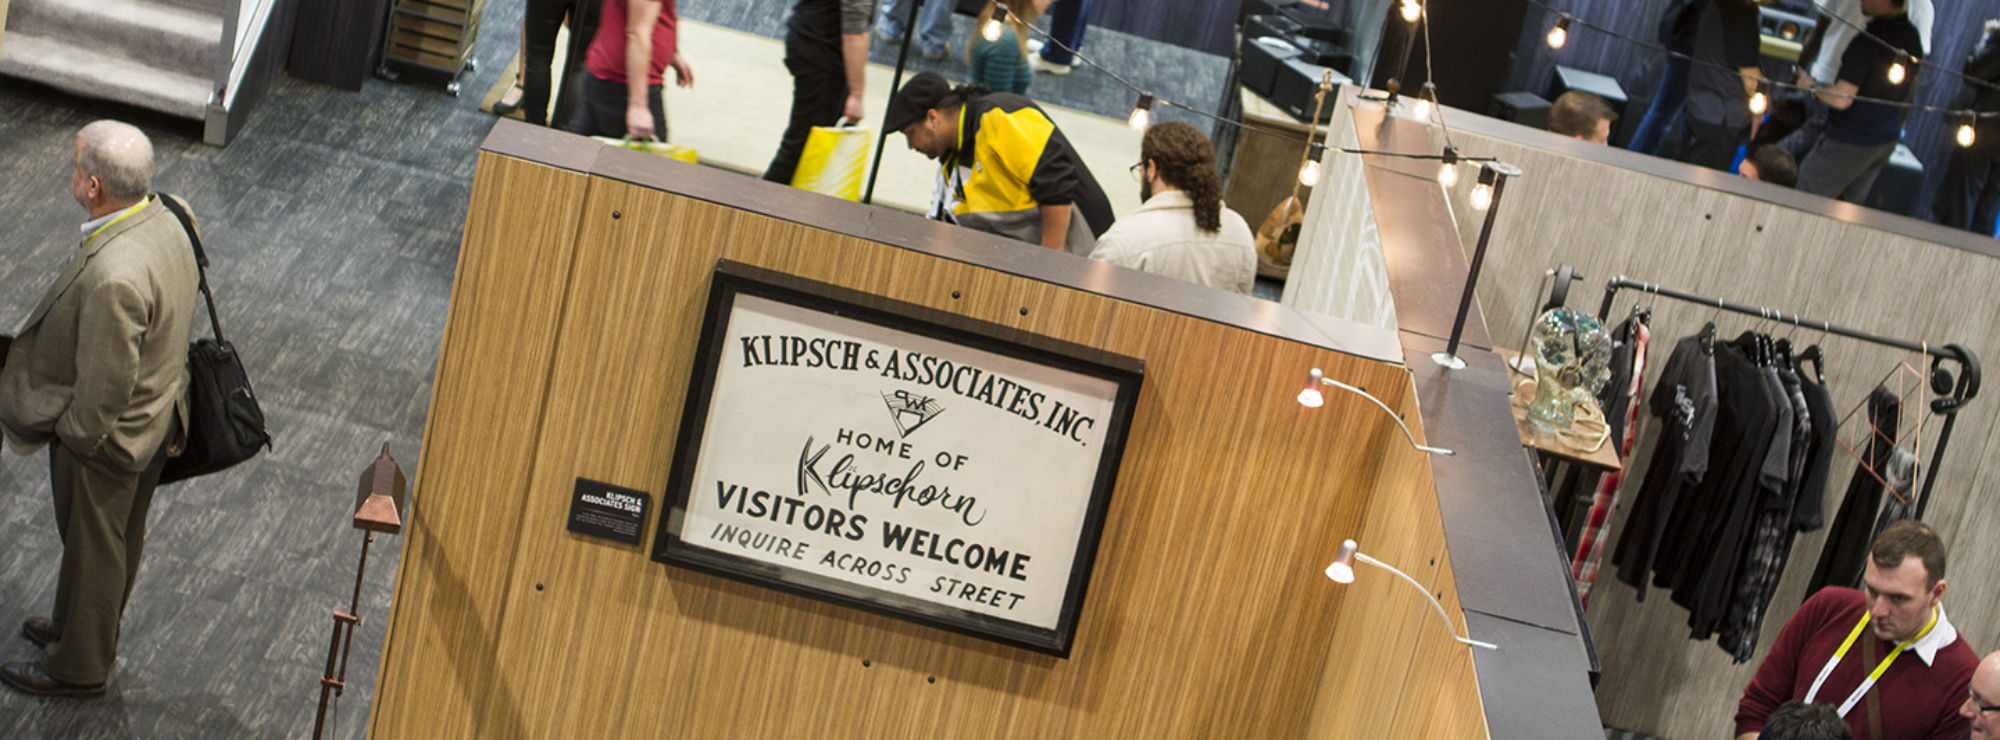 Klipsch & Associates sign at a convention